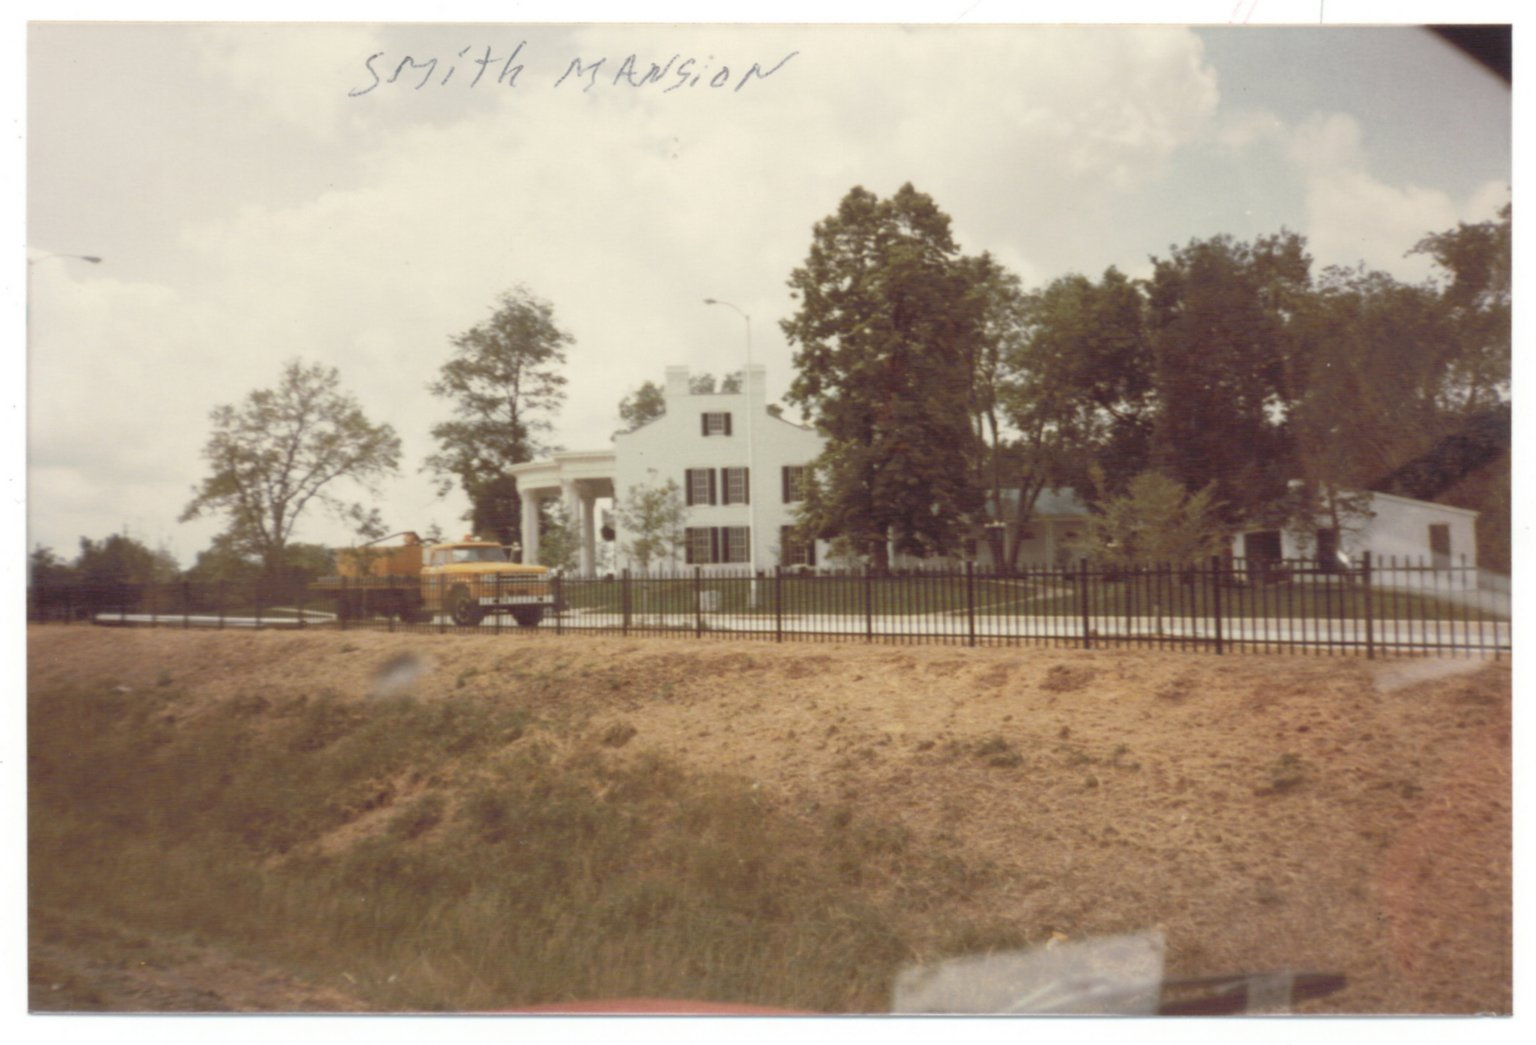 Smith Mansion (Whitehaven)